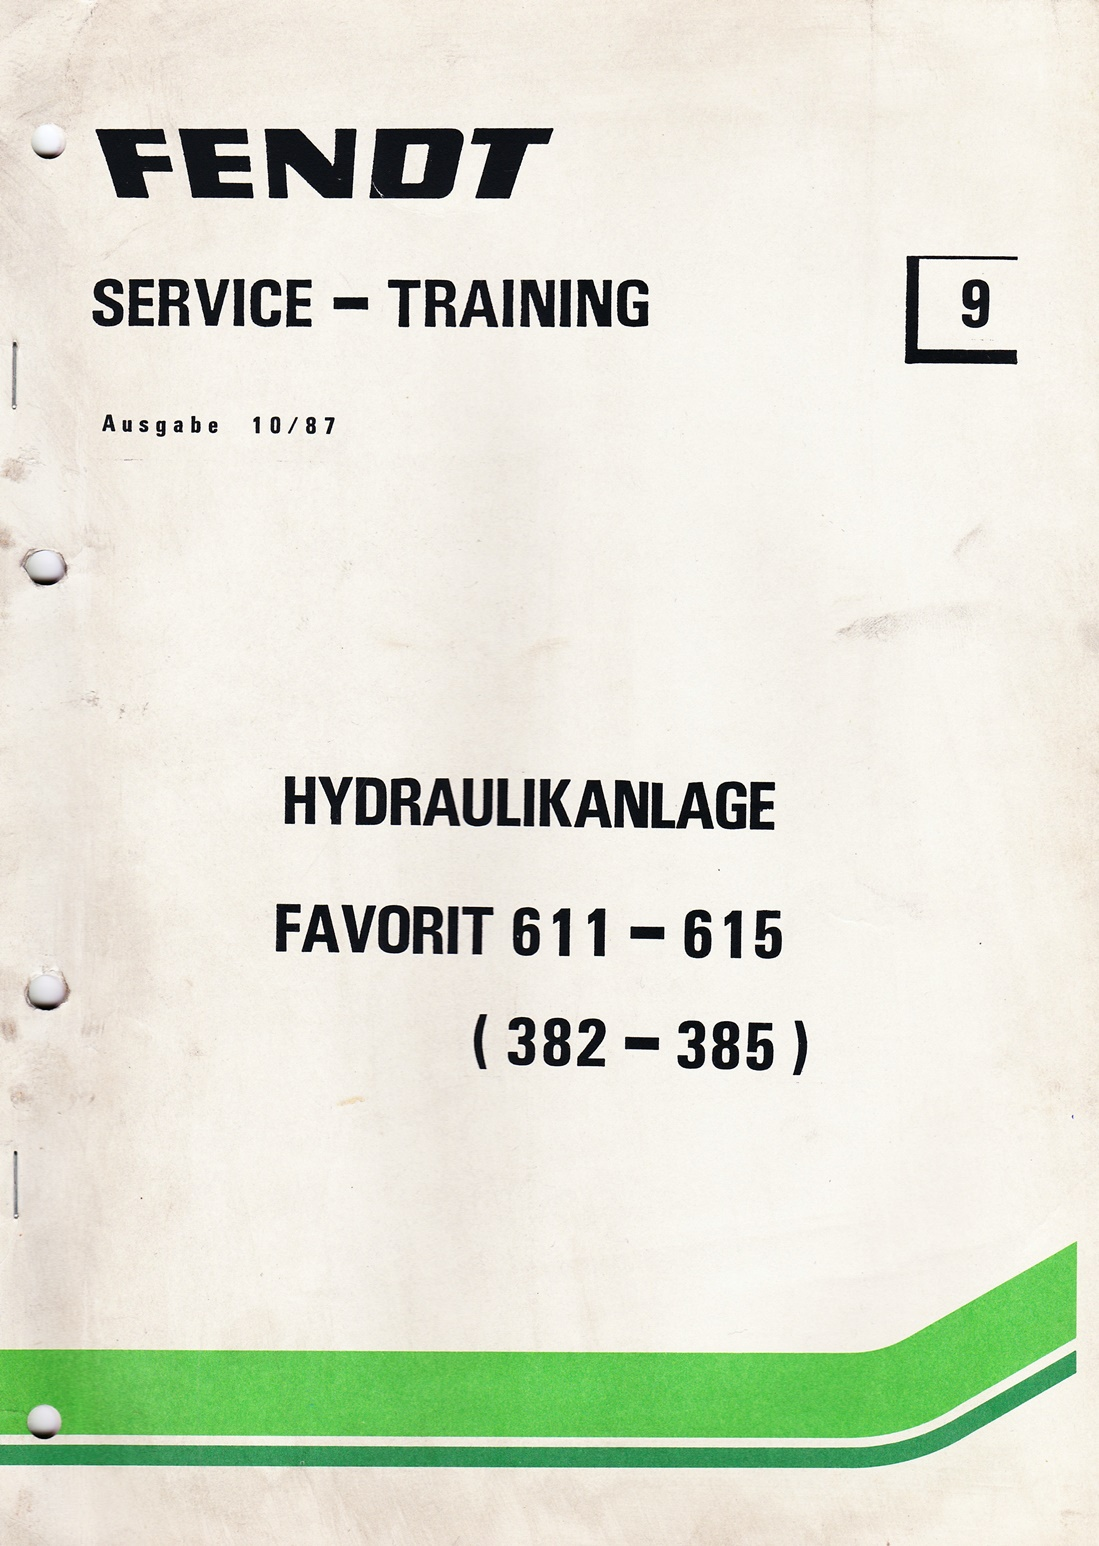 Fendt  Service und Training Nr.9, Hydraulikanlage Favorit 611 - 615